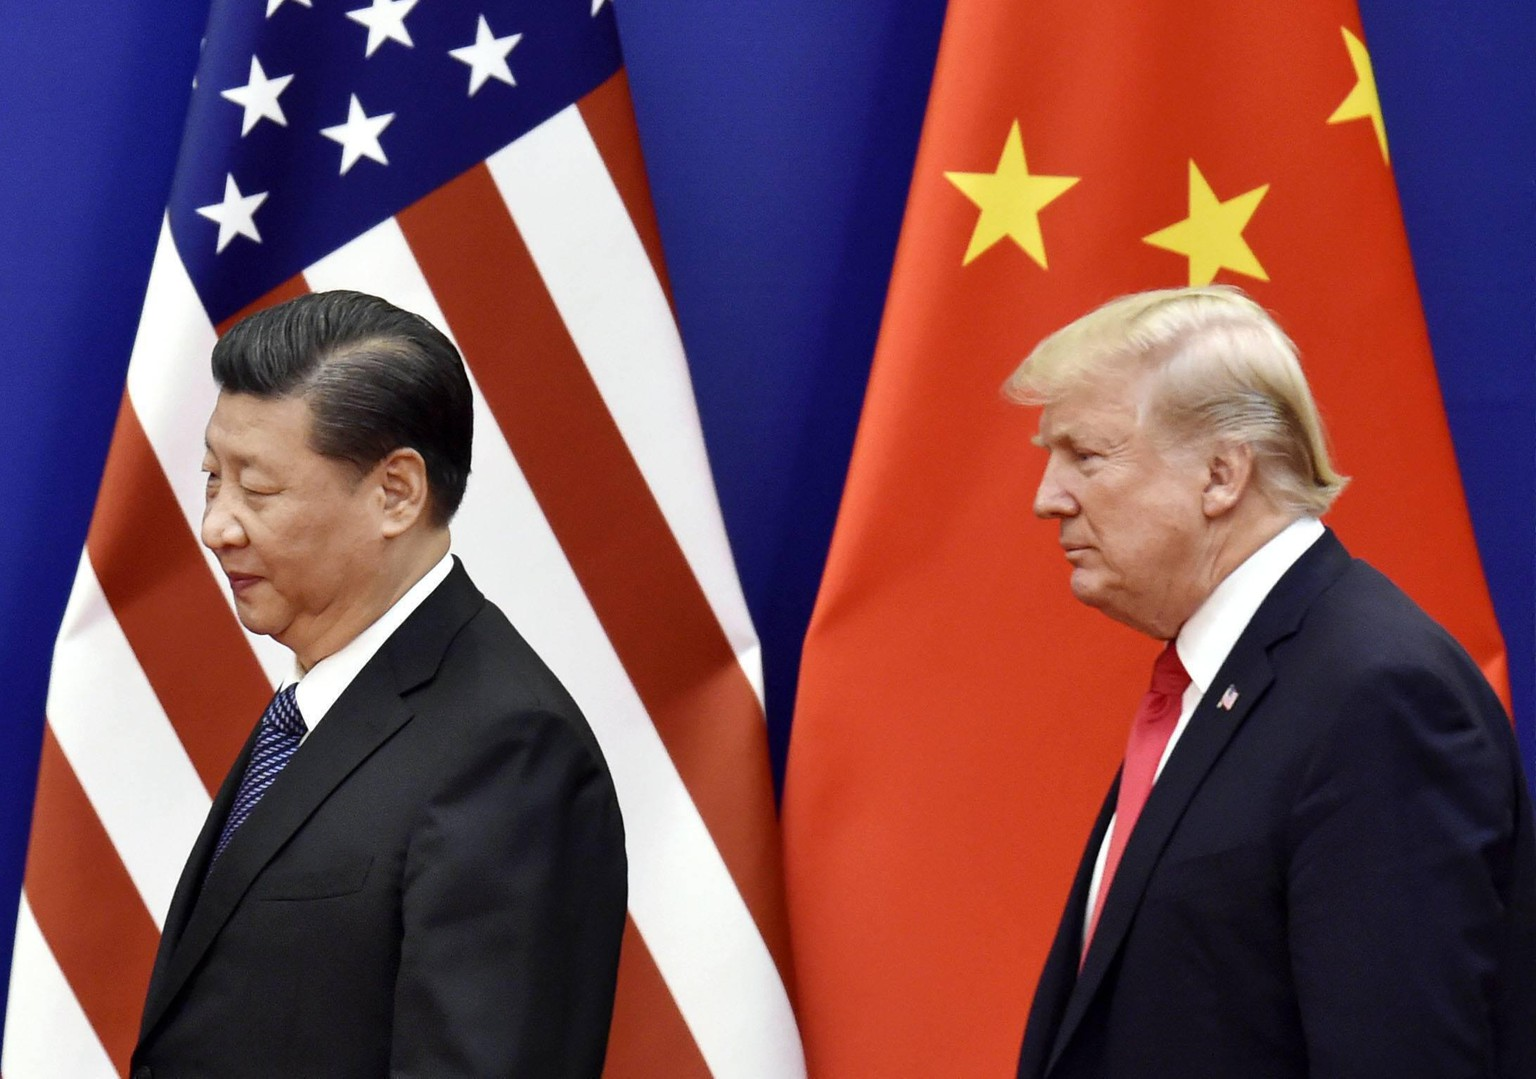 Trump and Xi File photo taken in November 2017 shows U.S. President Donald Trump R and Chinese President Xi Jinping at the Great Hall of the People in Beijing. PUBLICATIONxINxGERxSUIxAUTxHUNxONLY